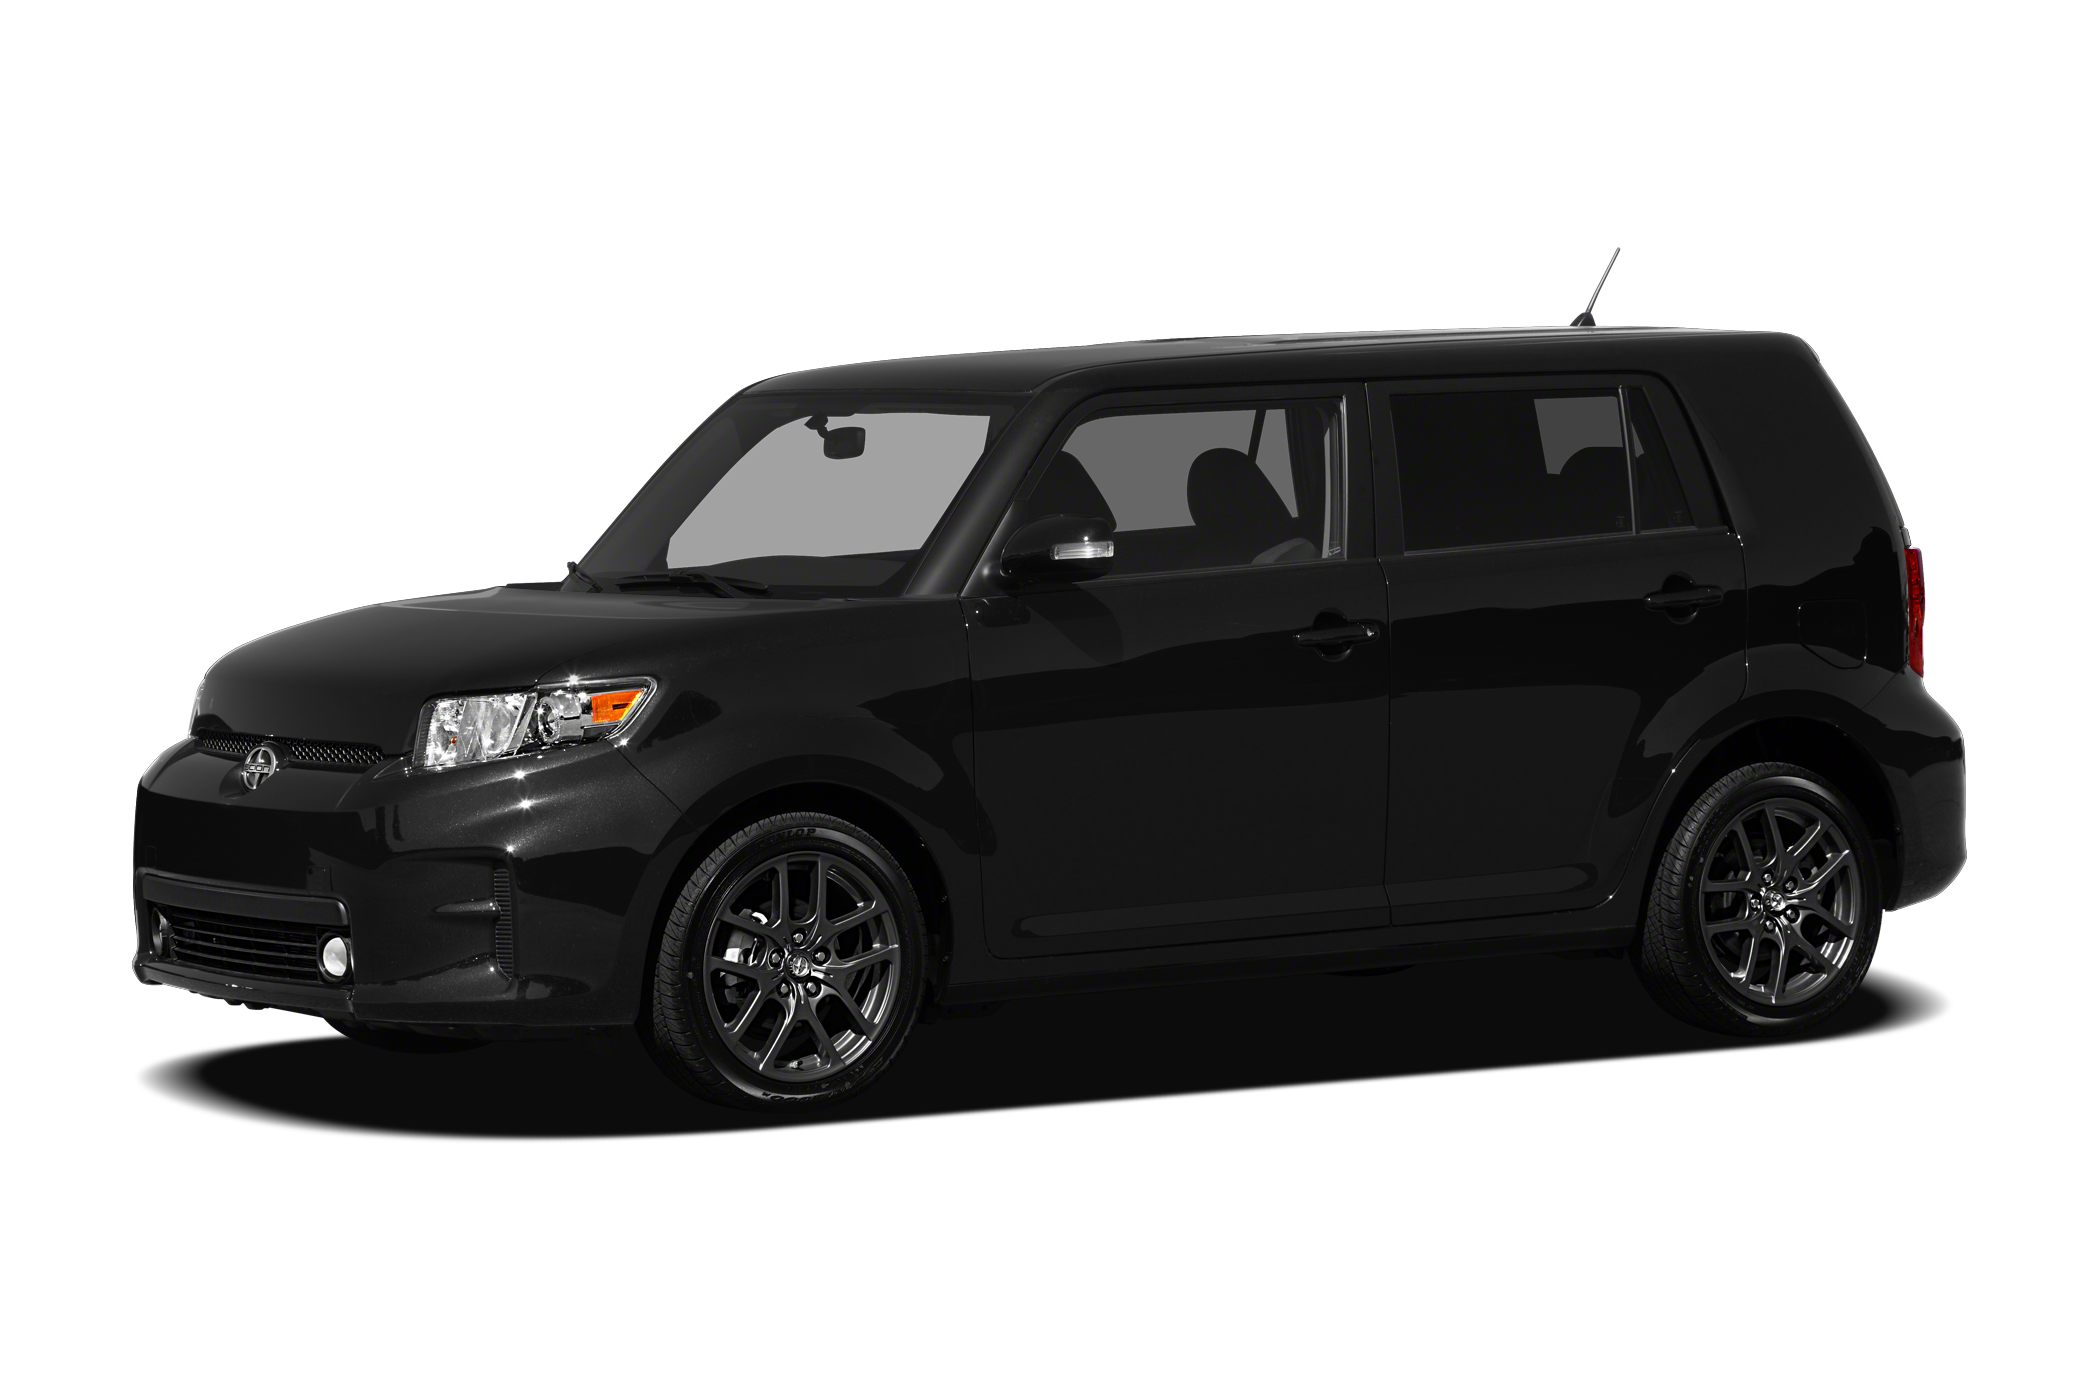 2011 Scion XB Base Wagon for sale in Tampa for $13,520 with 35,145 miles.